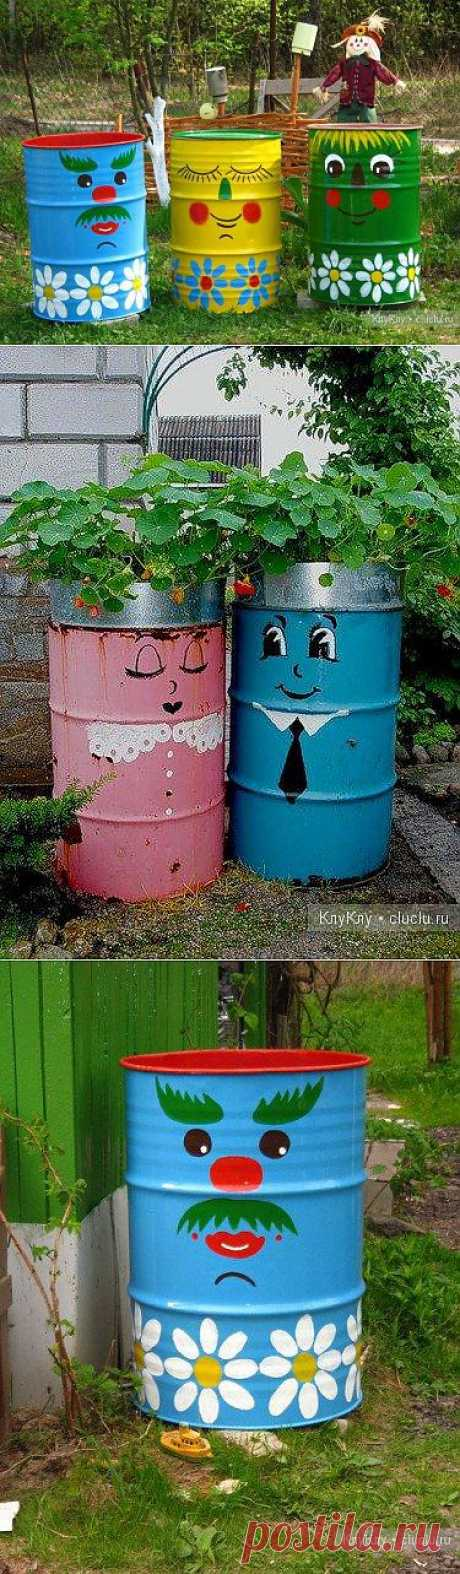 Barrels for giving. Garden design. Very beautifully also all will be able to make.